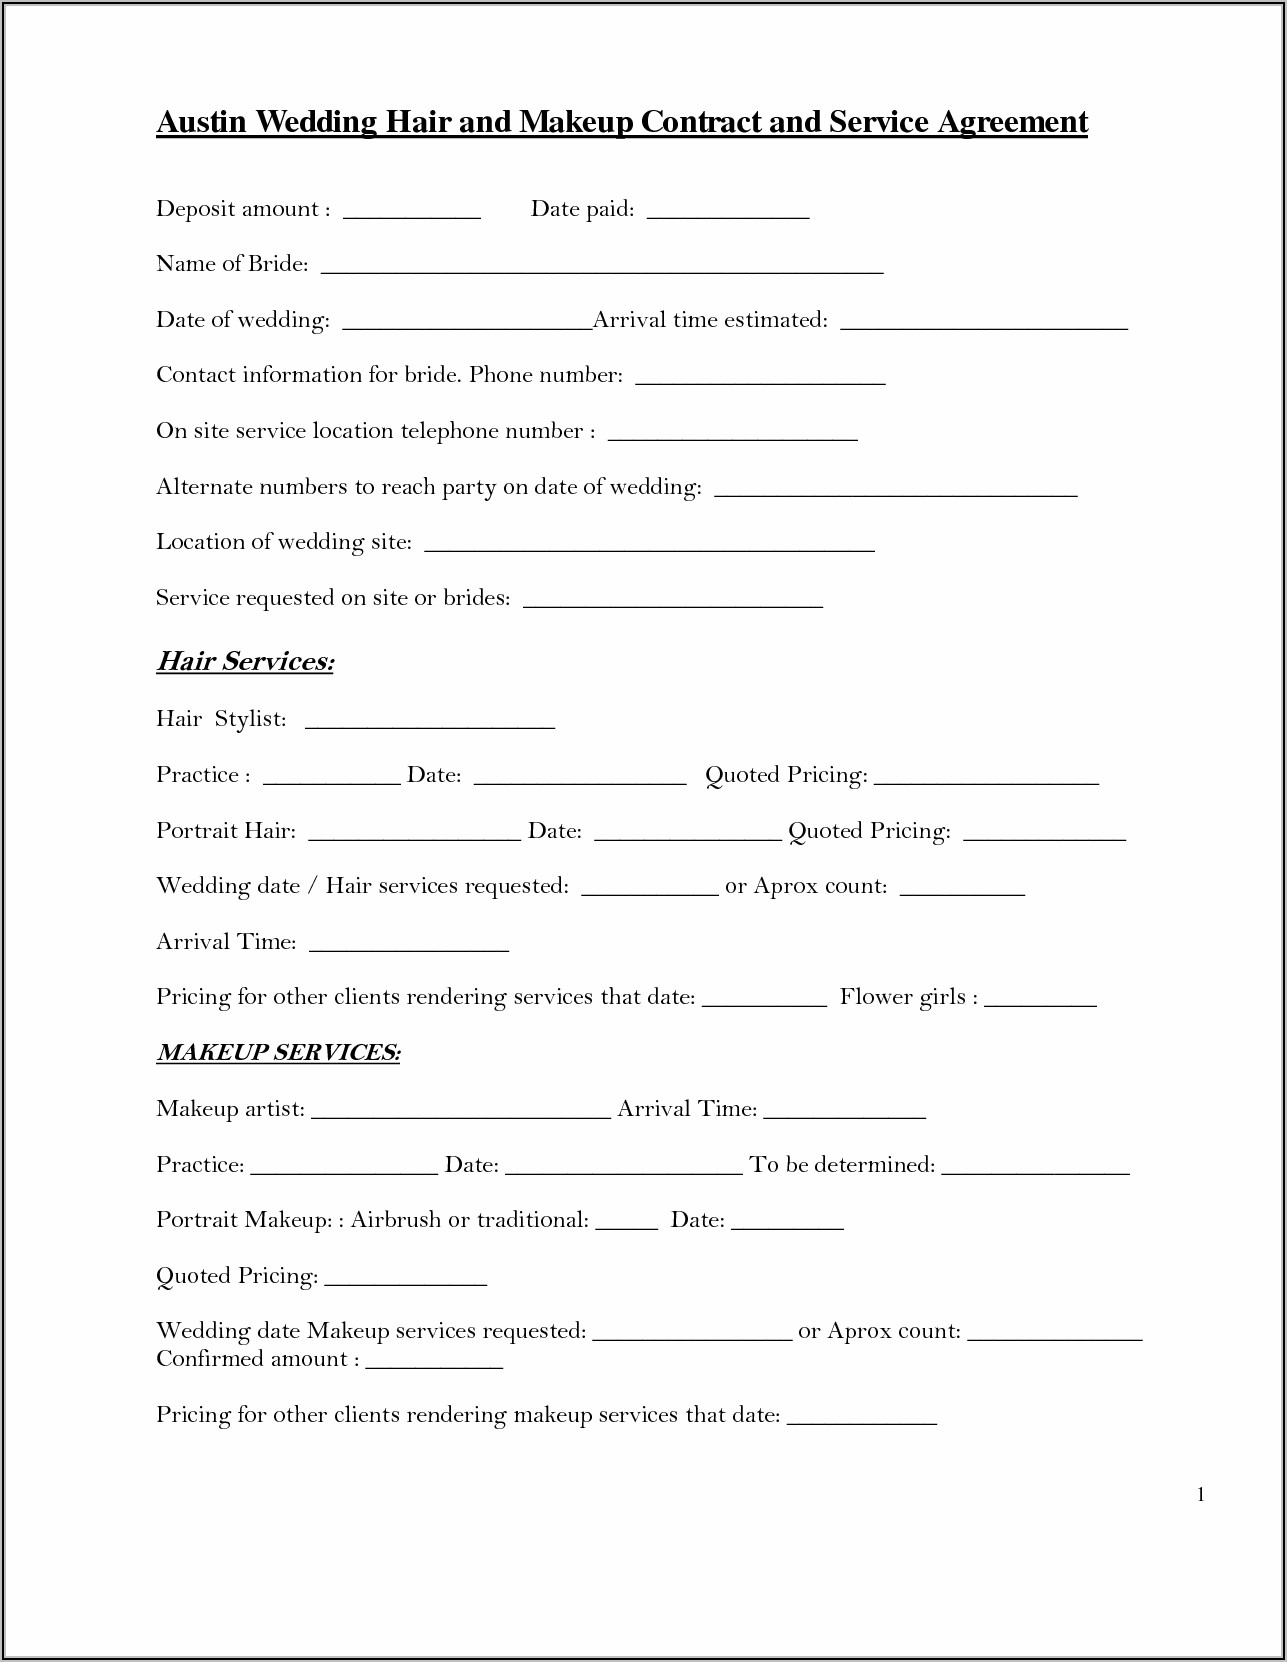 Wedding Contract Template For Hairdresser